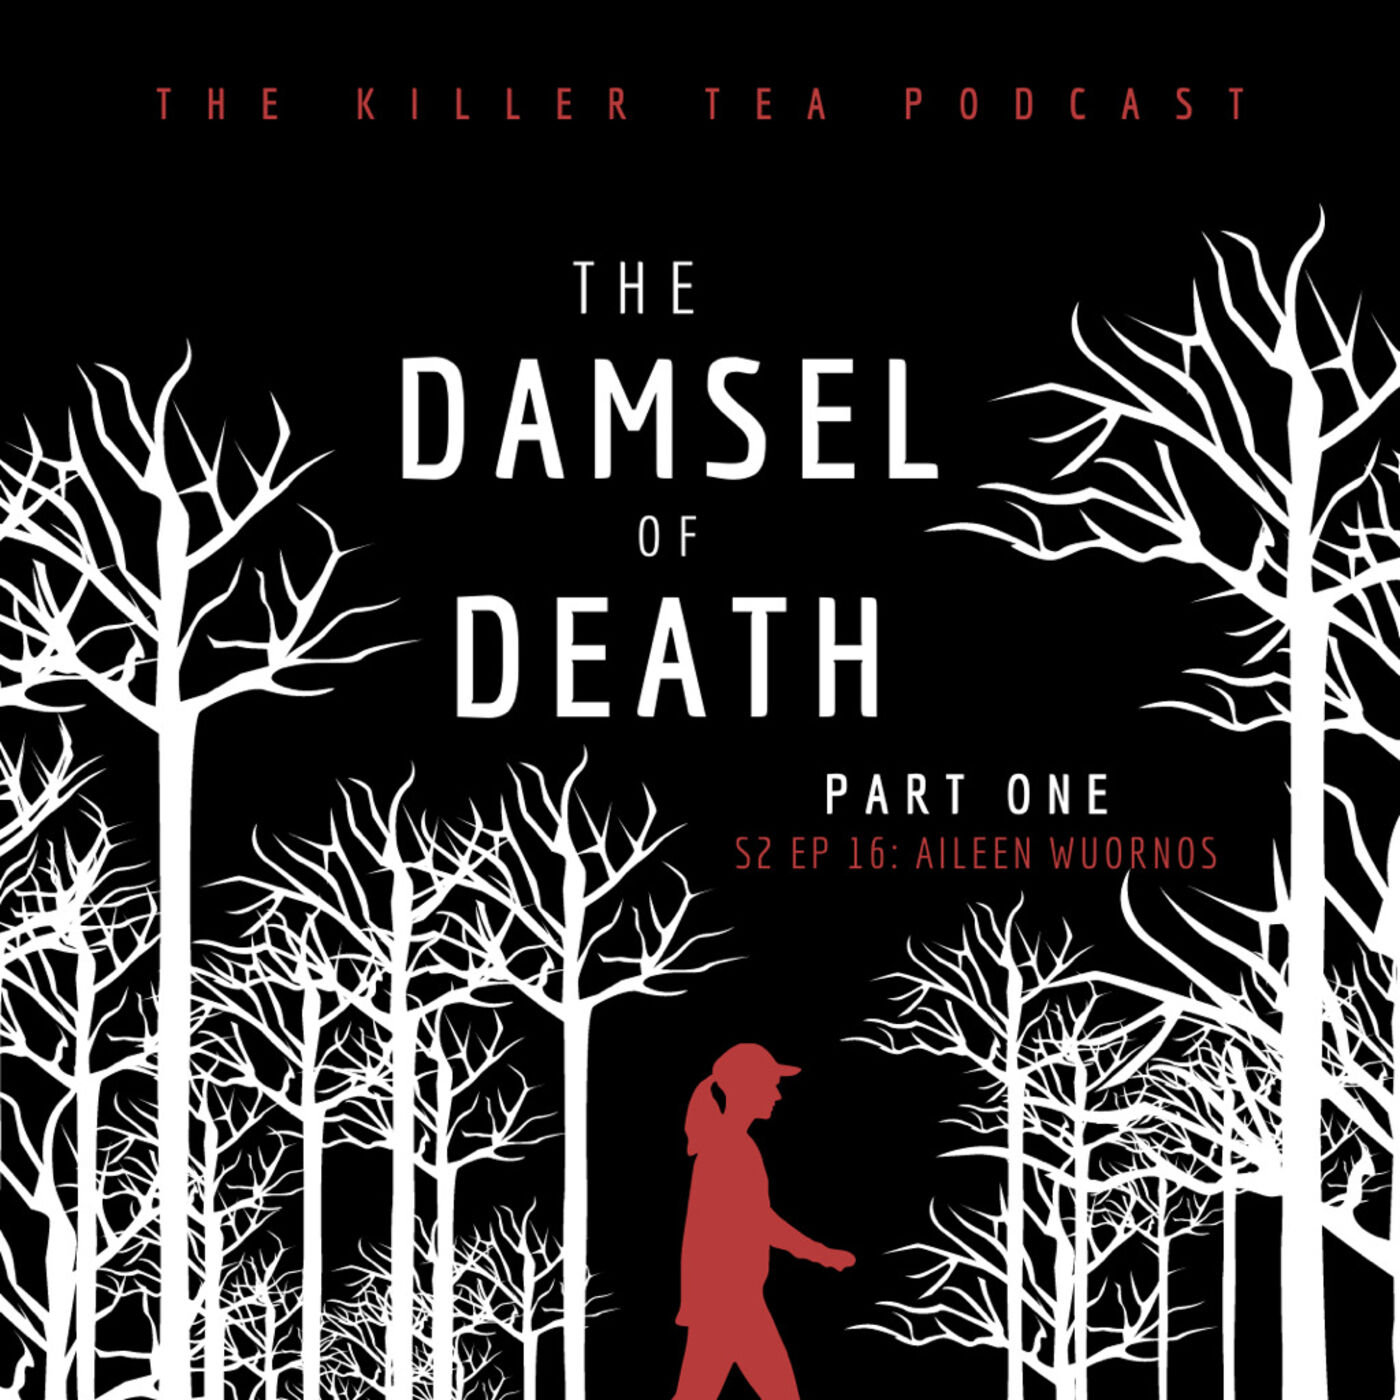 S2 Ep. 16 AILEEN WOURNOS    The Damsel of Death    Part 1